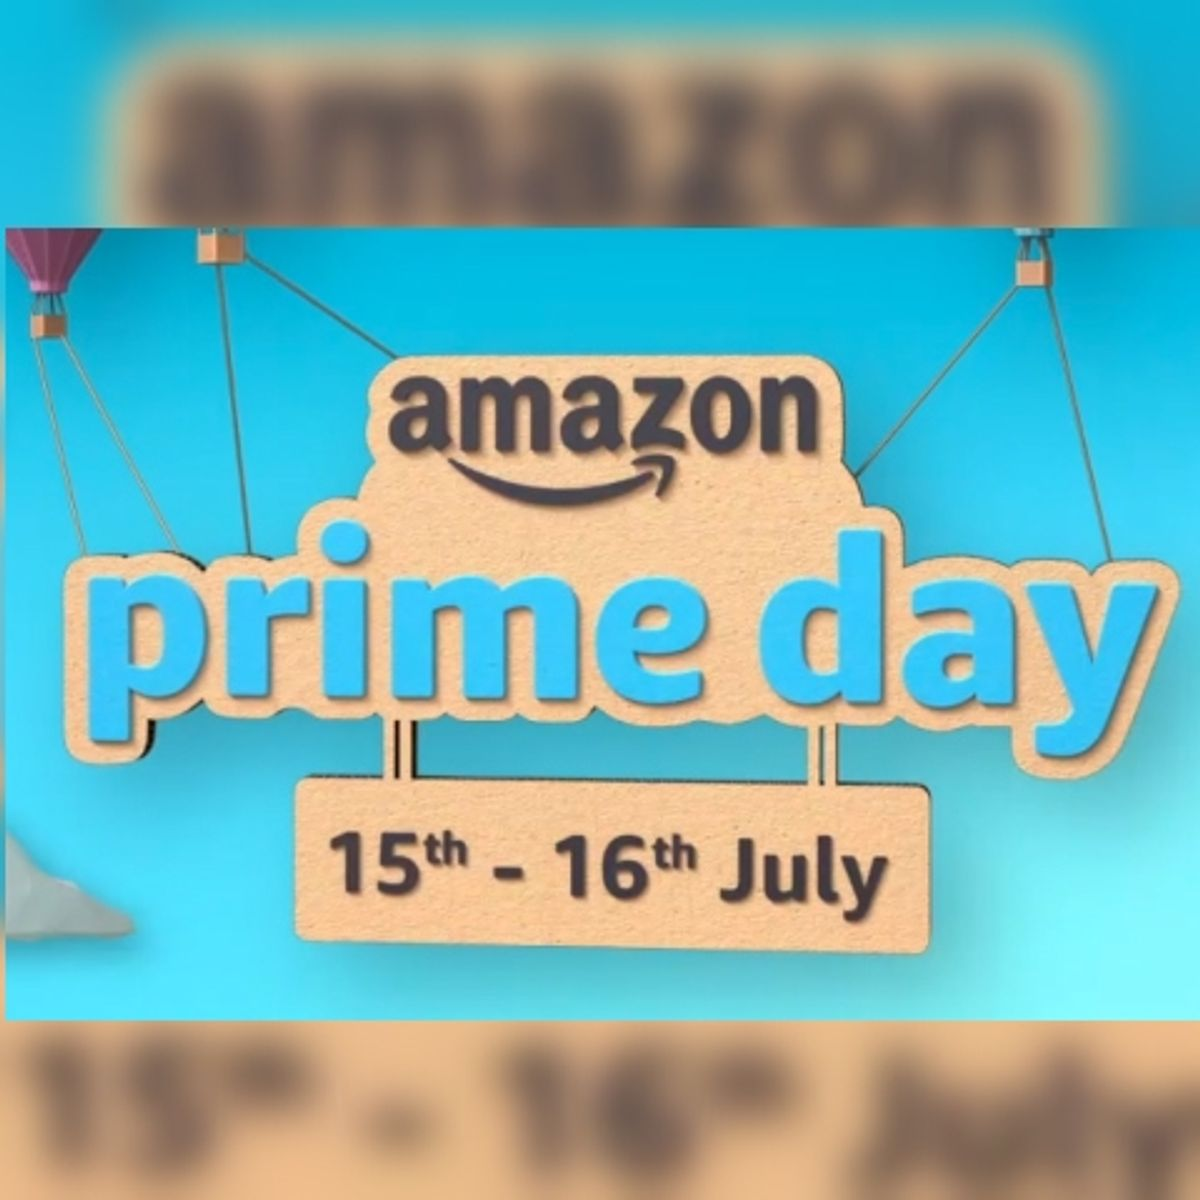 Amazon Prime Day 2019: How to get the best deals and crack